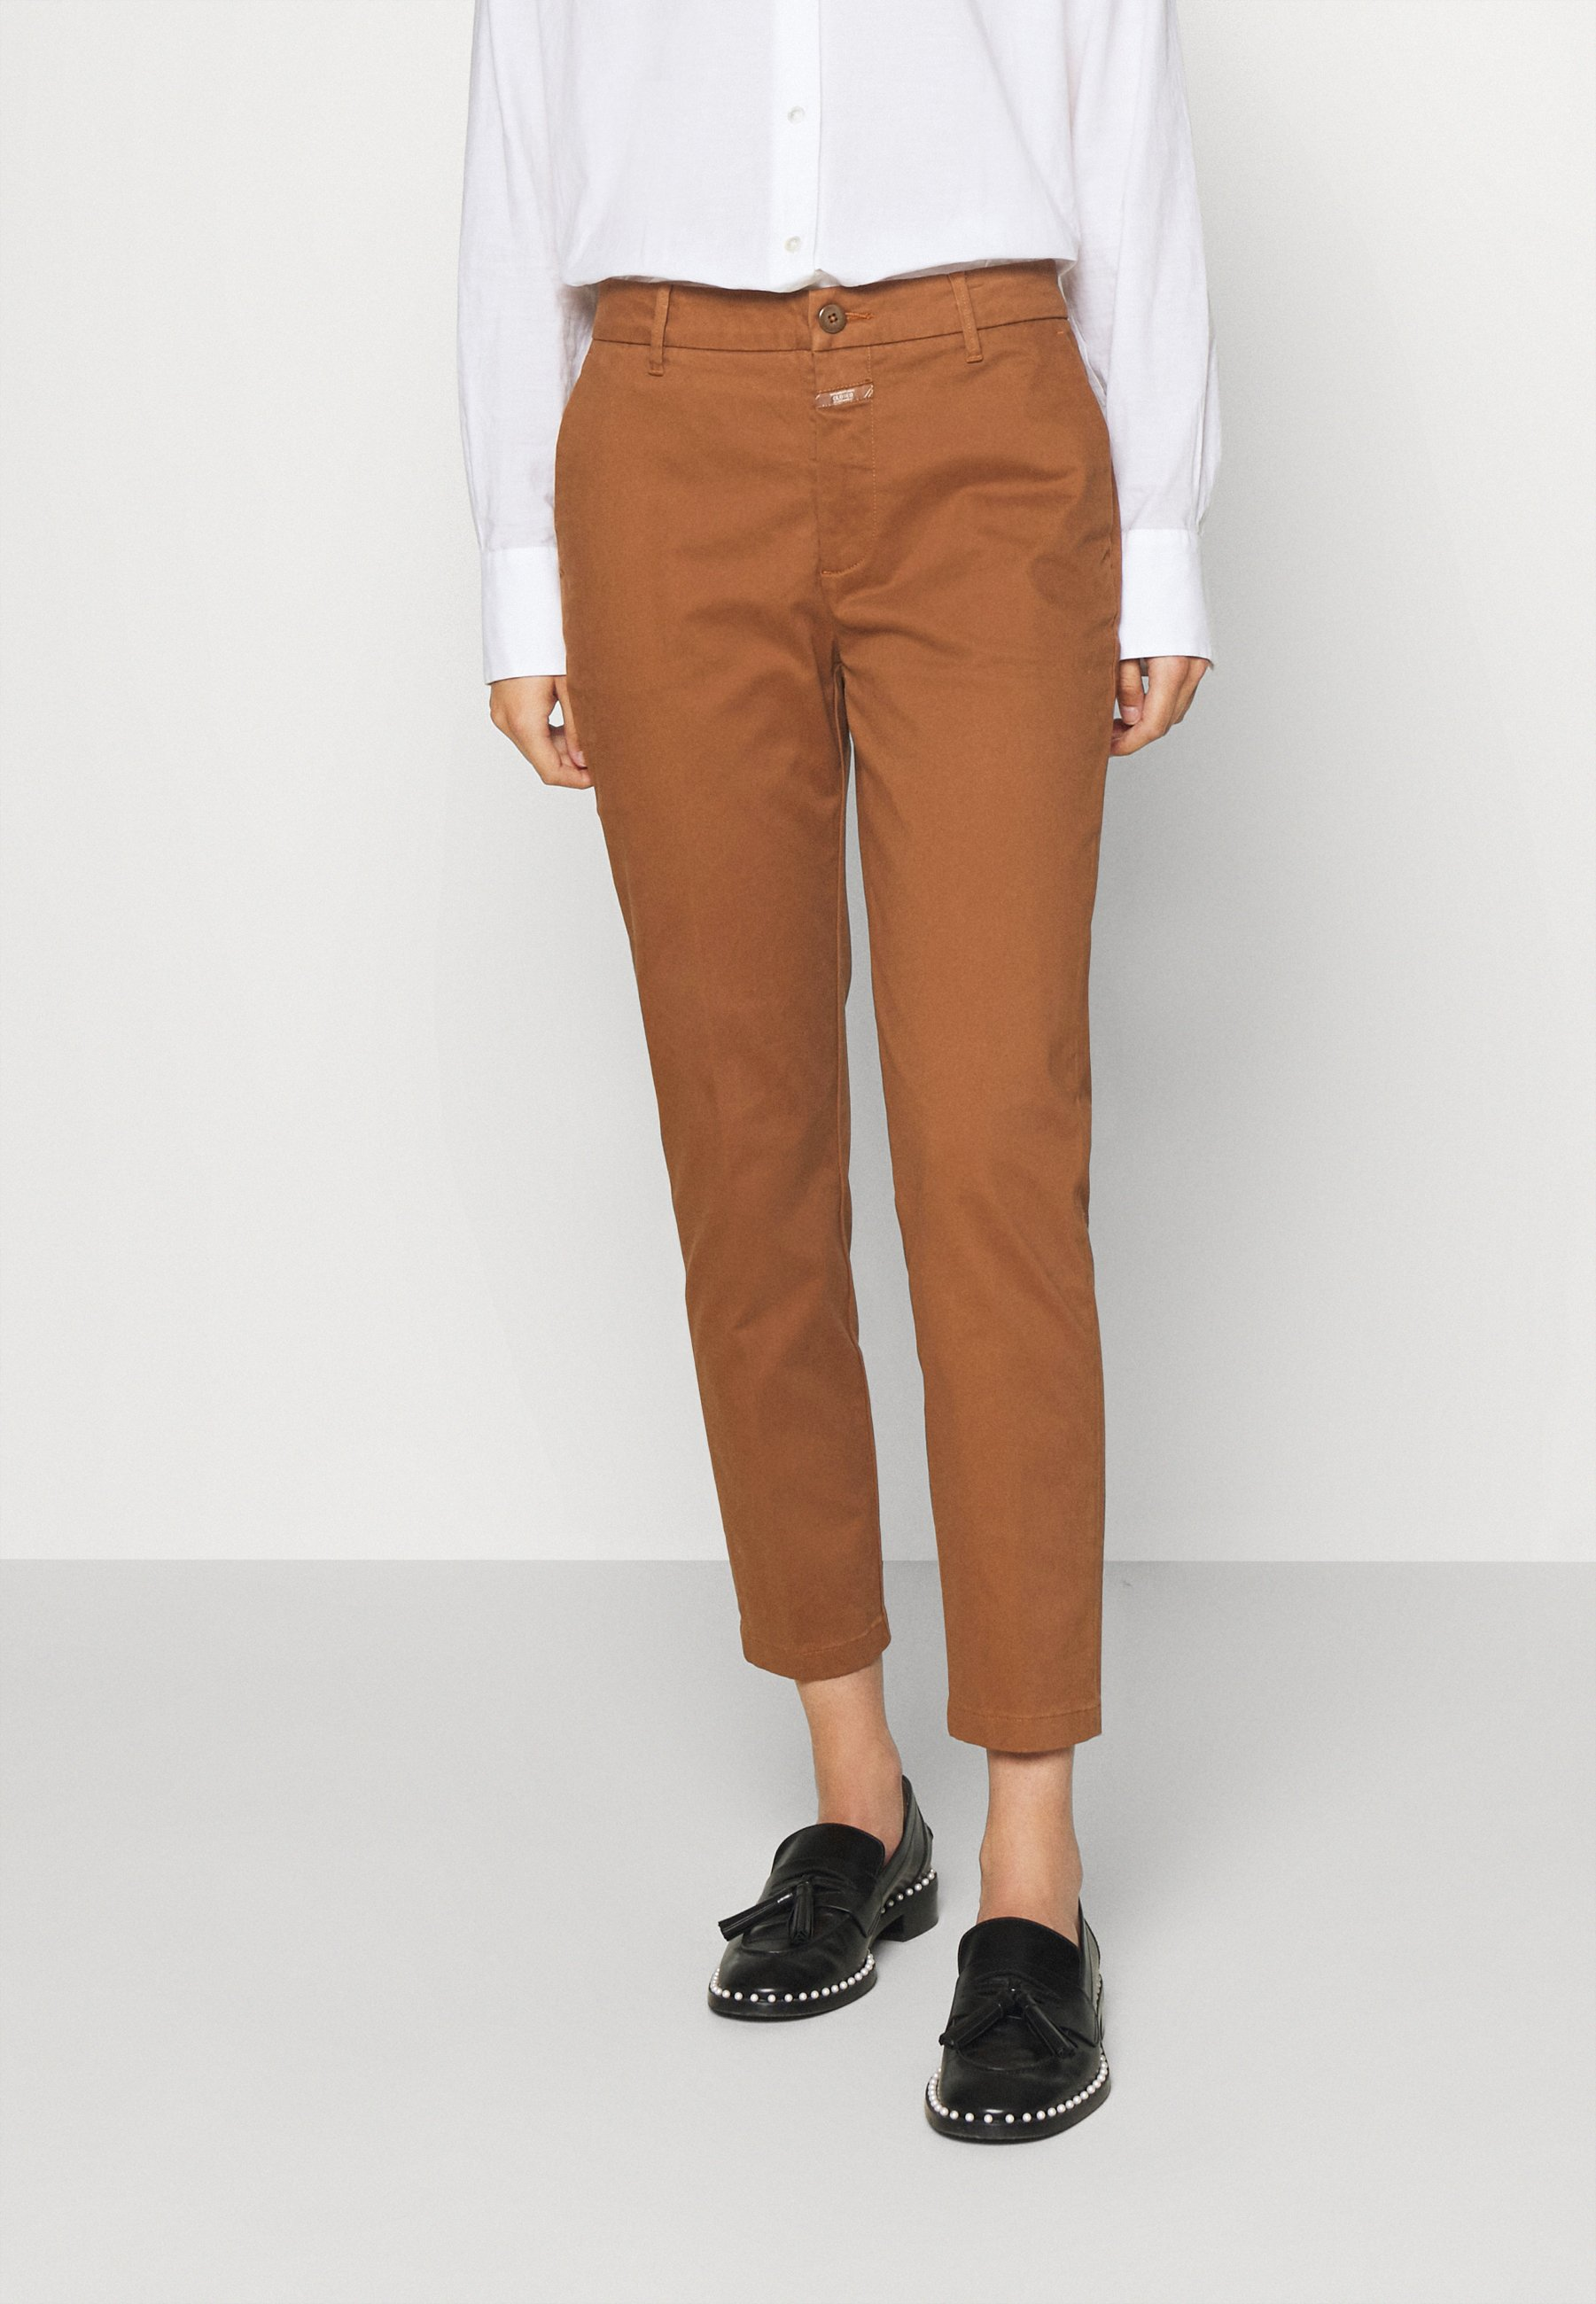 Fast Express Women's Clothing CLOSED JACK Chinos antique wood rHFbMyF1k